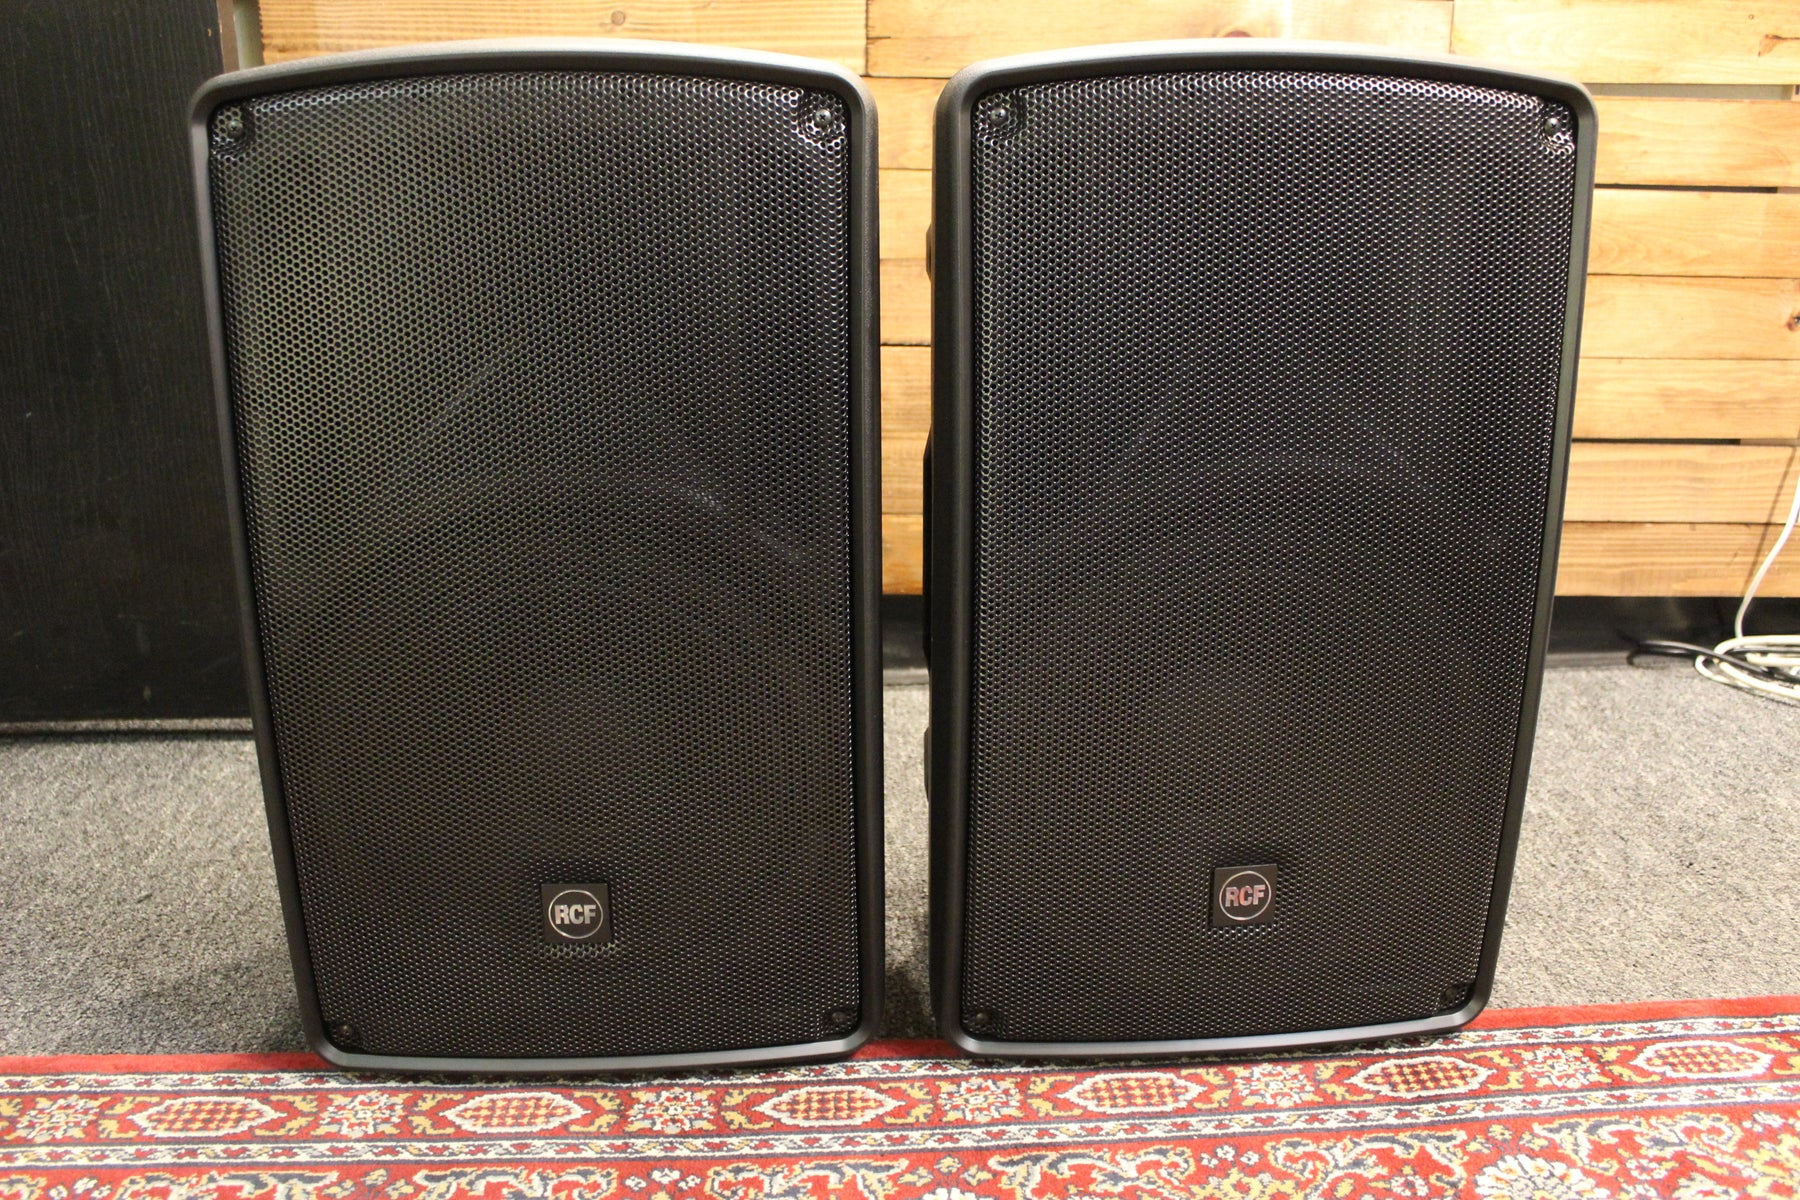 RCF HD-32A MK4 Active 2 Way Speakers (2) with Speaker Covers